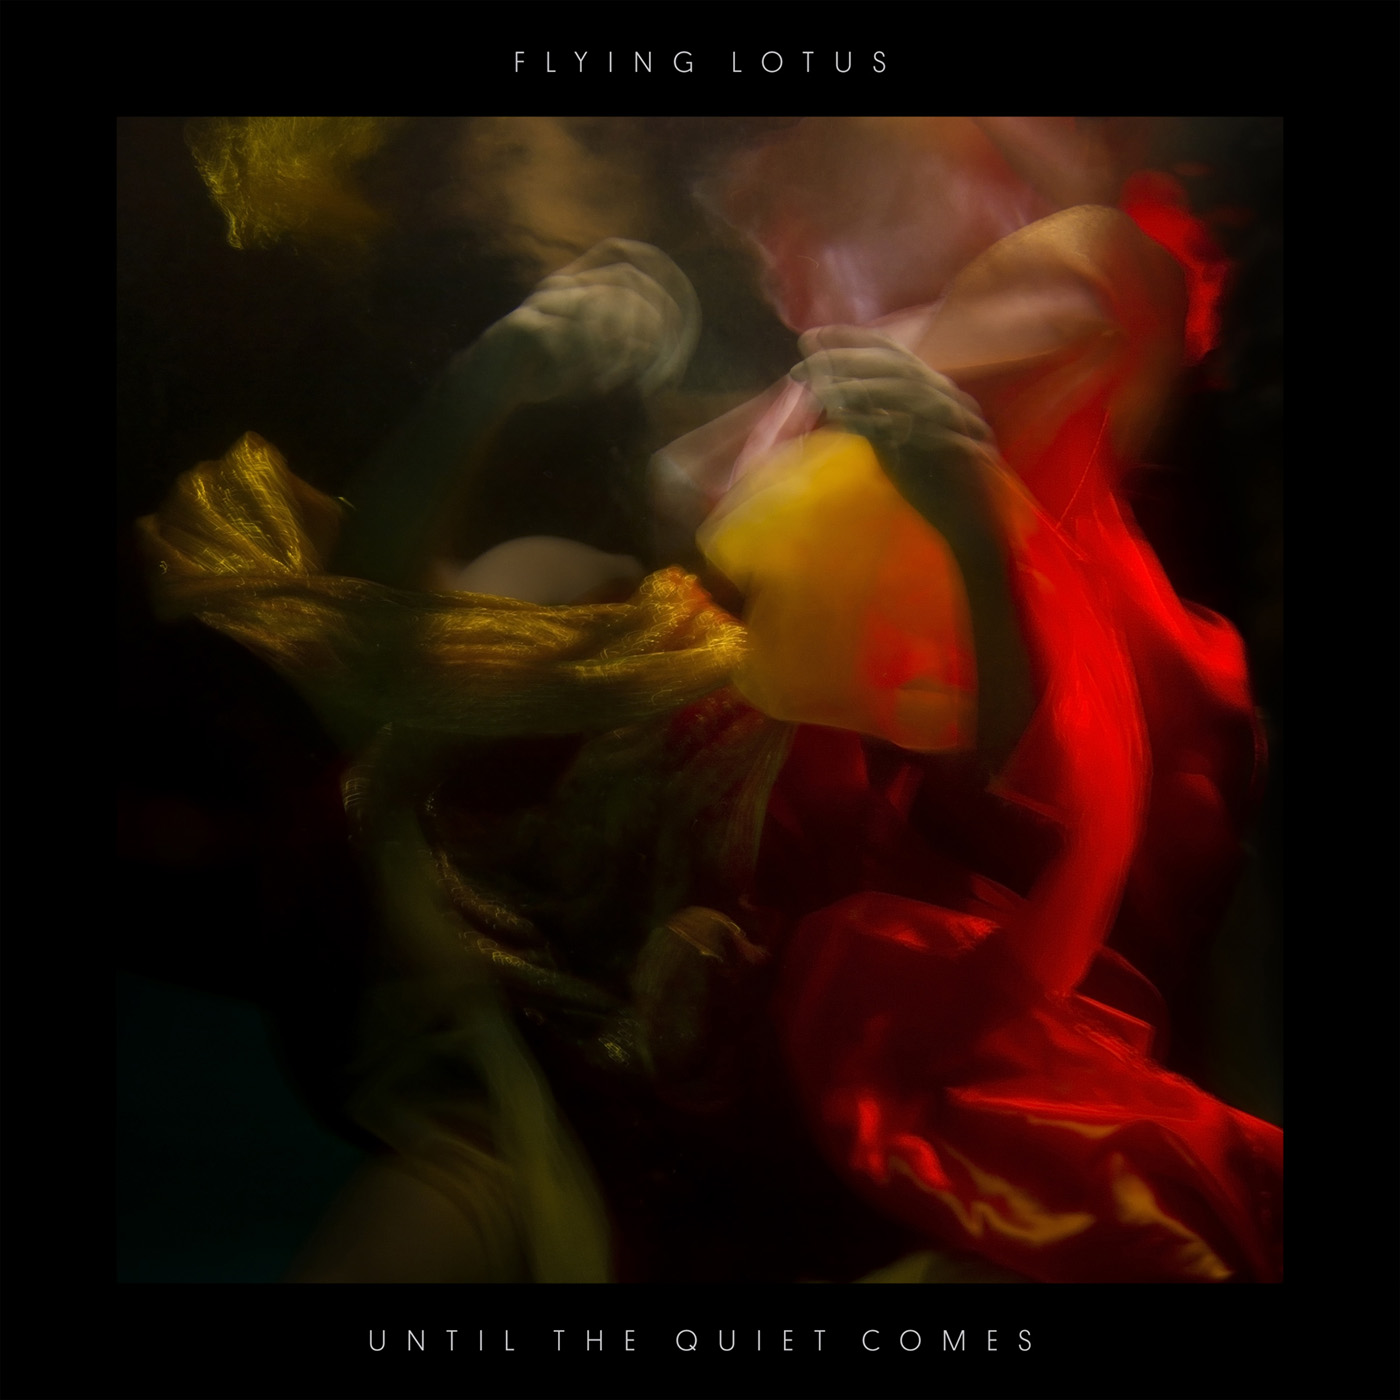 http://www.journalventilo.fr/wp-content/images/Galette-Flying_Lotus-Until-The-Quiet-Comes.jpg